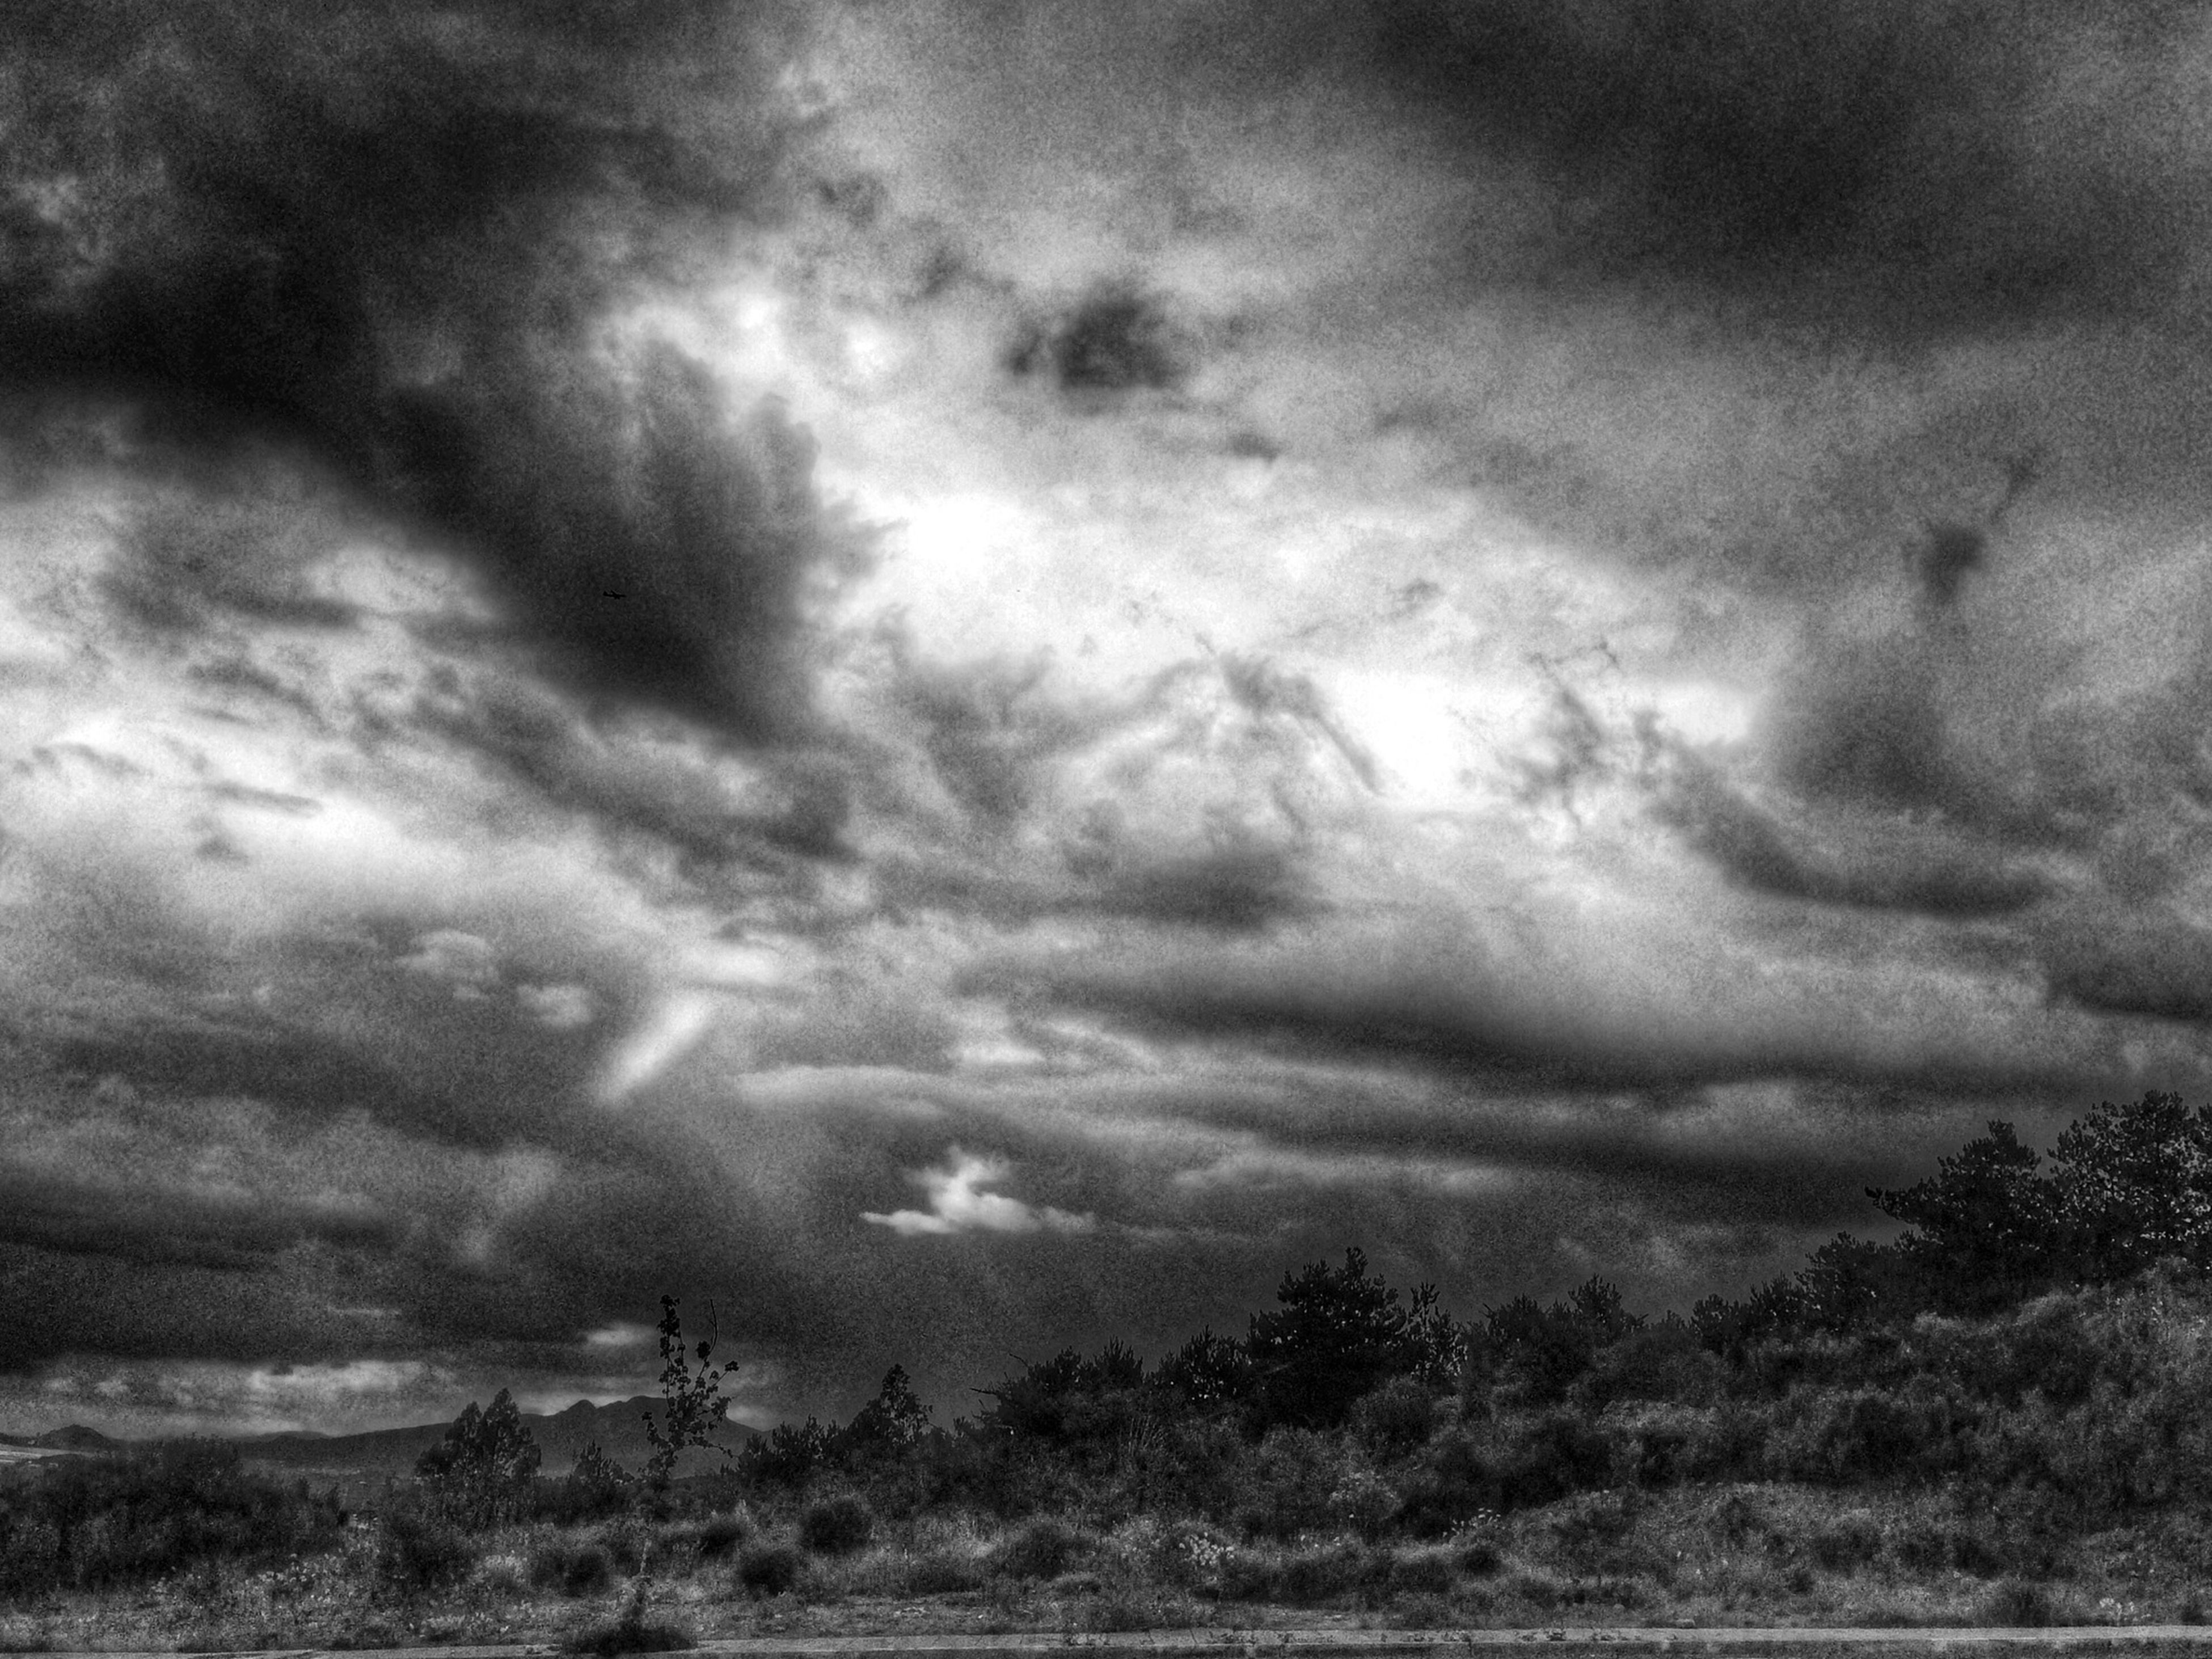 sky, cloud - sky, cloudy, tranquility, tranquil scene, landscape, scenics, tree, weather, beauty in nature, nature, overcast, field, storm cloud, cloud, low angle view, non-urban scene, growth, idyllic, outdoors